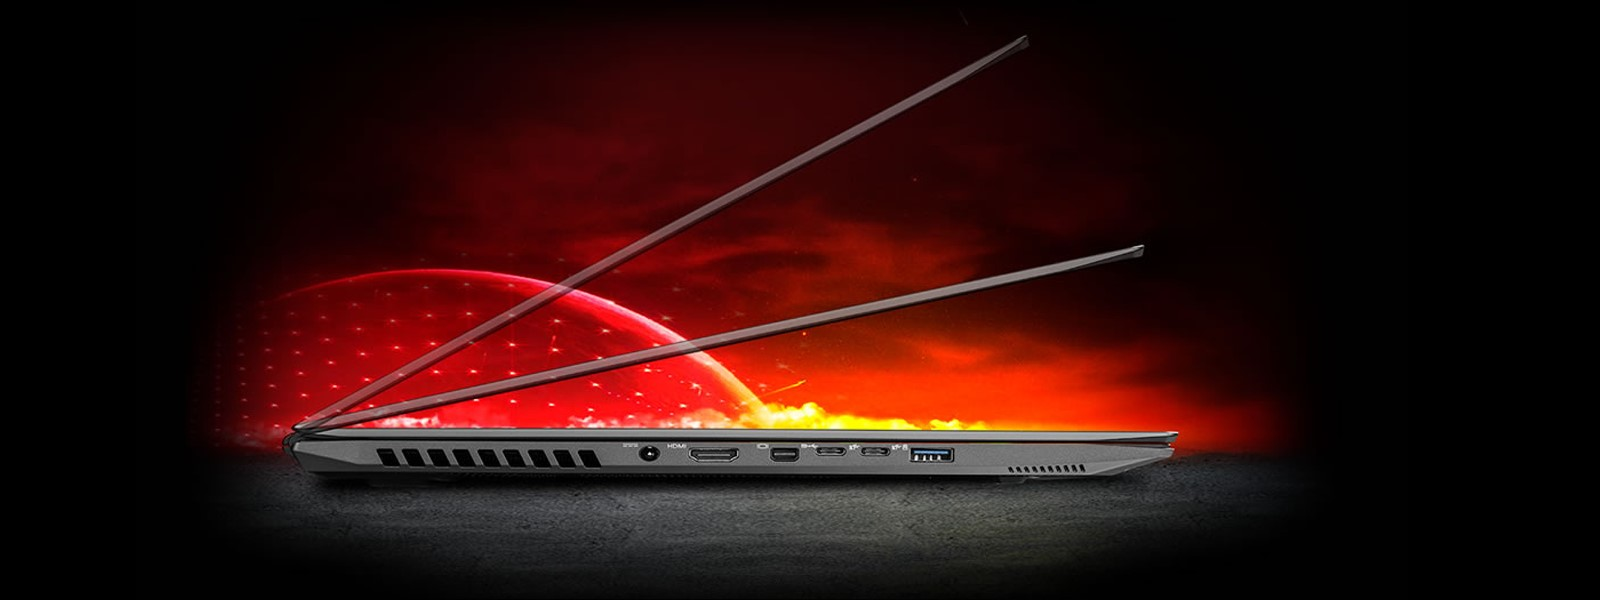 CLEVO-Computer-P970RN-NVIDIA-RTX-2080-Max-Q-Design-Intel-Core-9th-Gen-i7-9750H-Ultra-Slim-Gaming-Laptop-Custom-Notebook-Metal-Chassis-Features-Specification-2